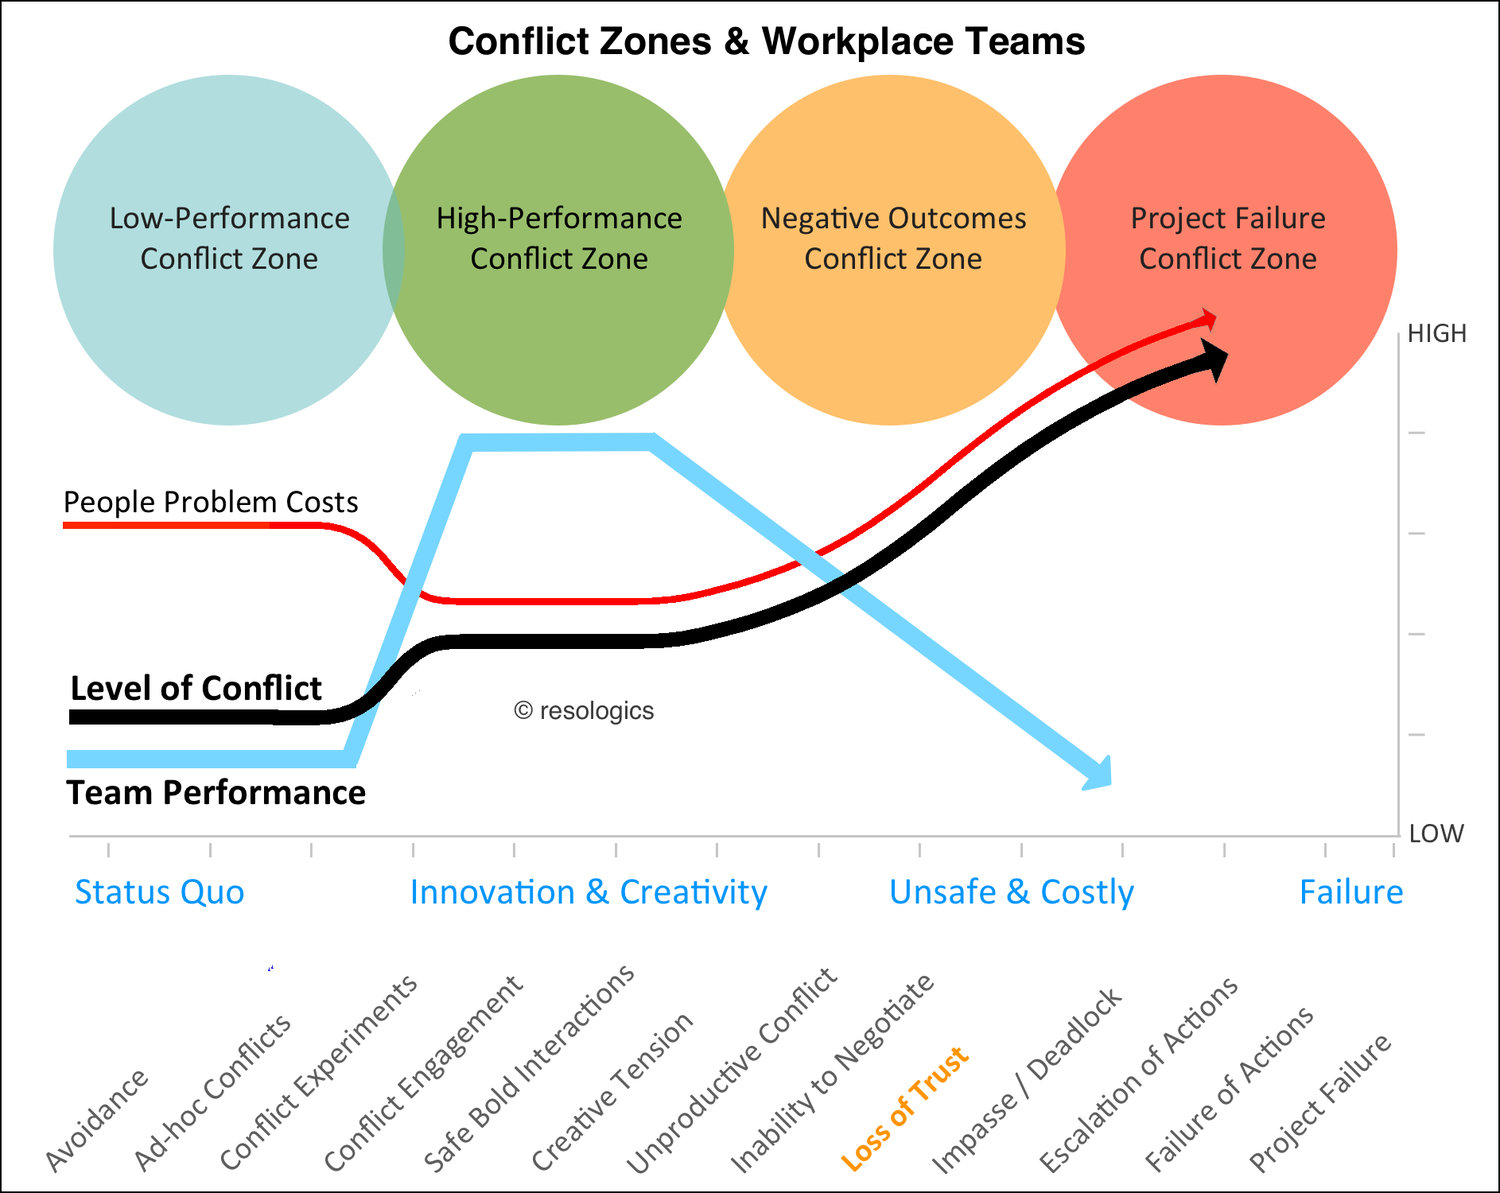 Resologics+Workplace+Team+Conflict+Zone+Chart.jpg